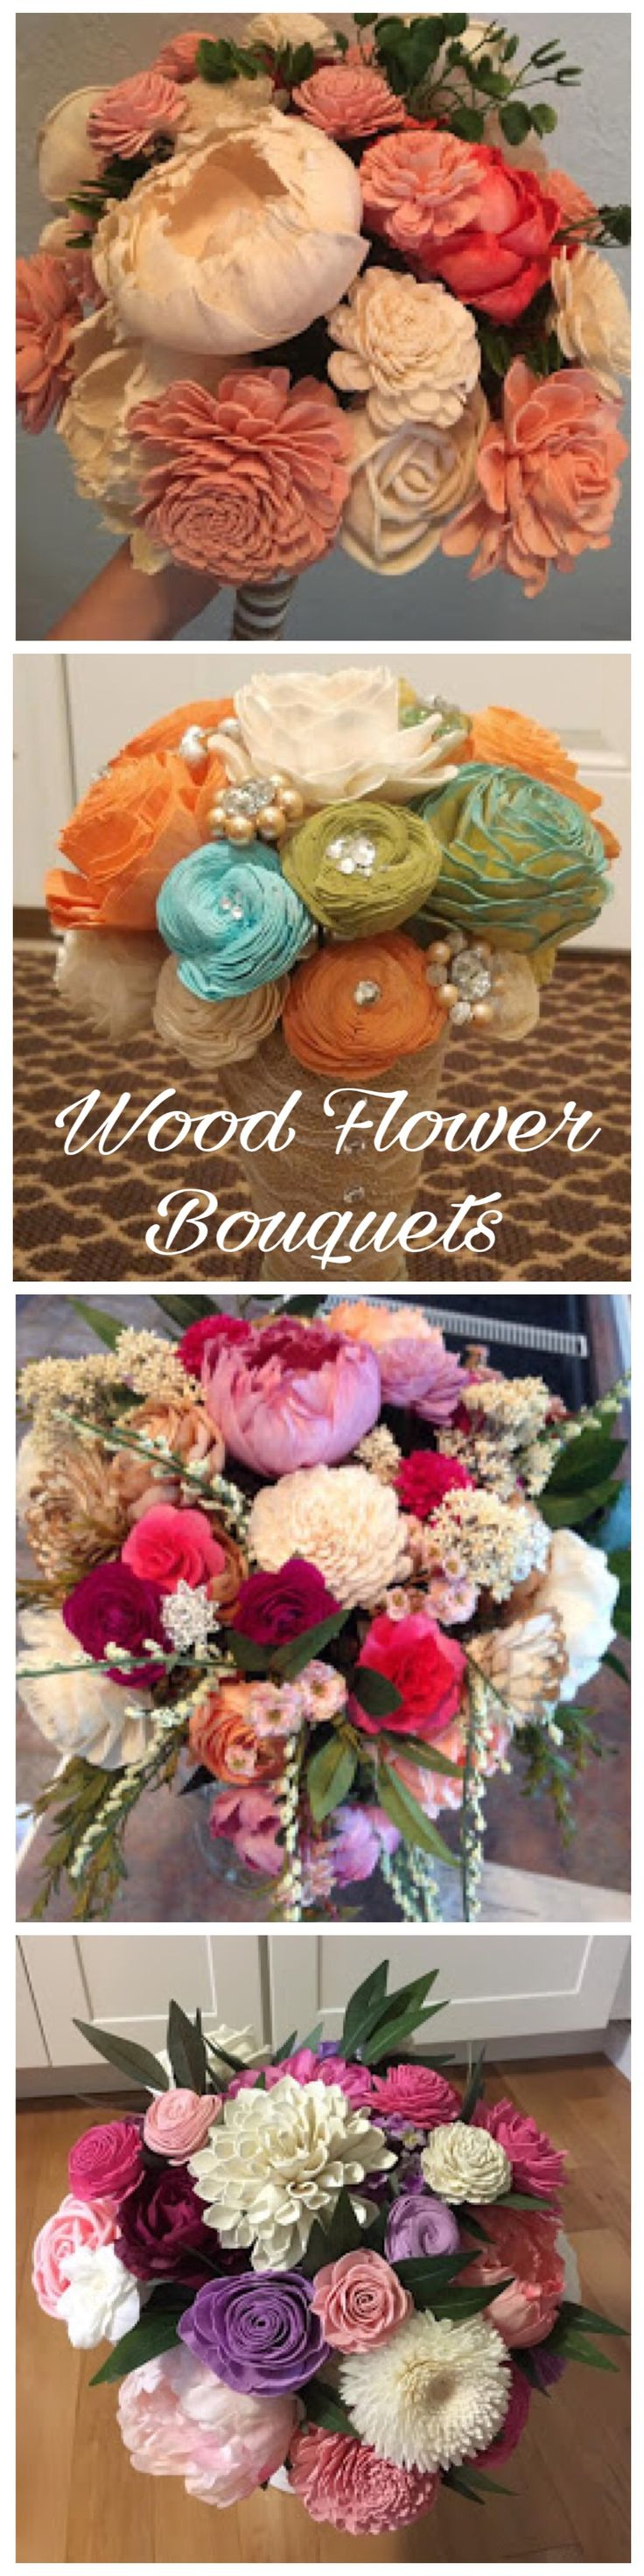 Create you're wedding bouquet using sola wood flowers. Pick your colors or dye them yourself. Great for the DIY bride #woodflowers #diybride #diywedding